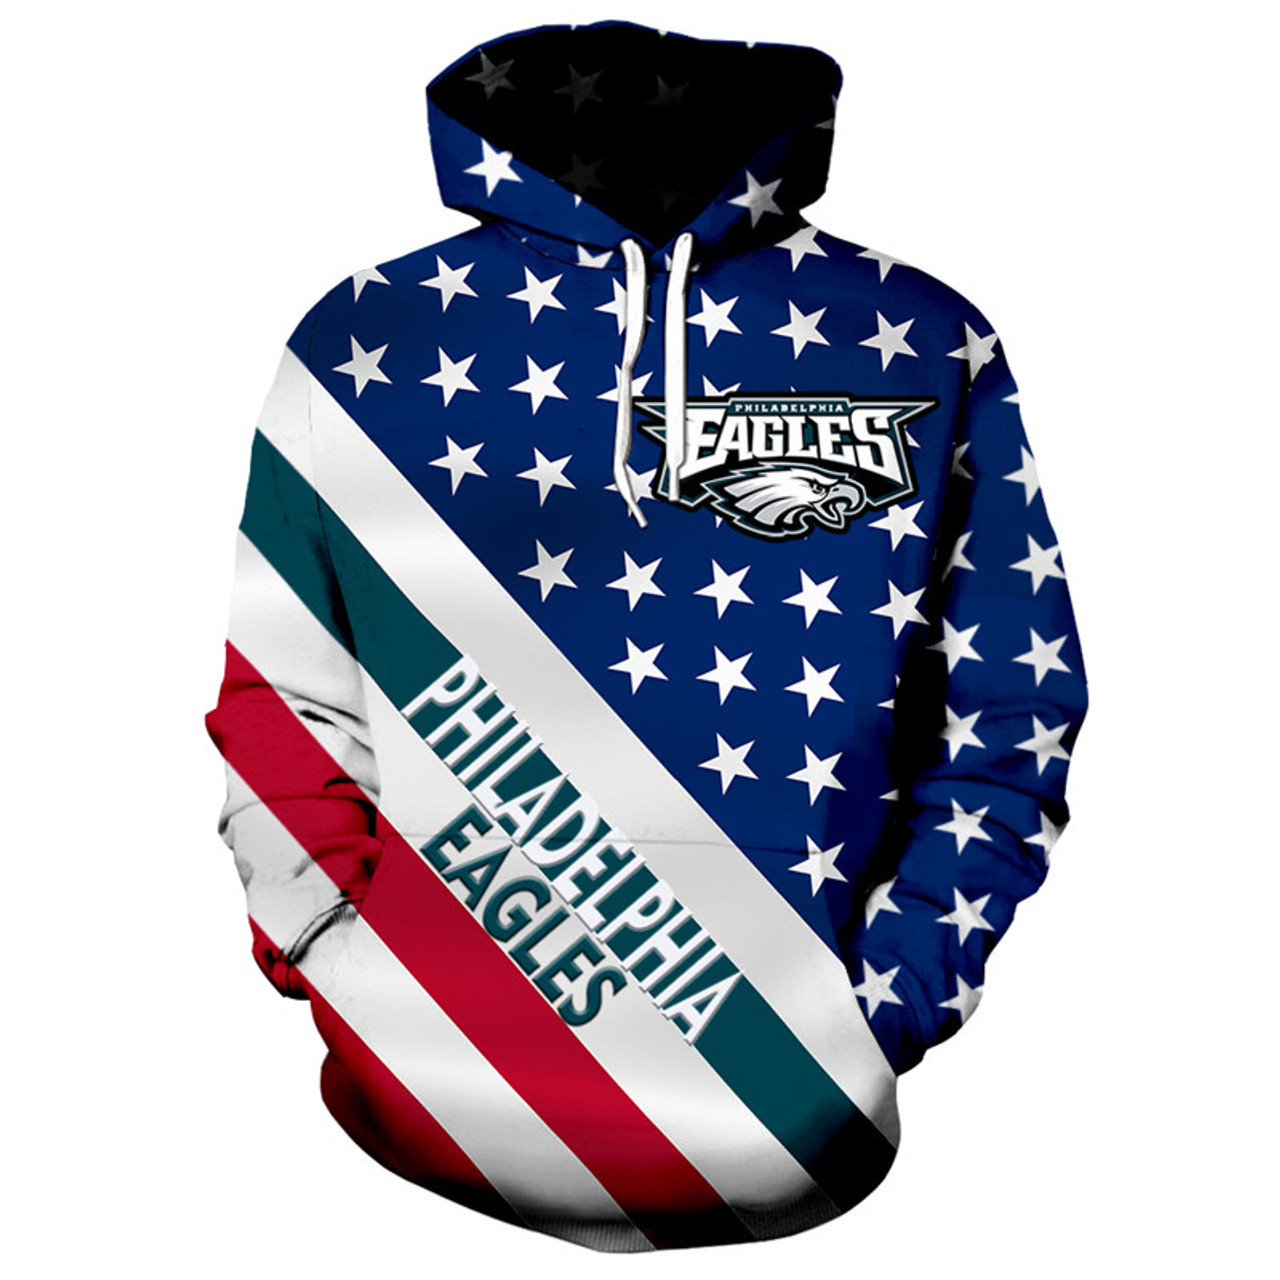 huge selection of d2876 59482 **(OFFICIALLY-LICENSED-N.F.L.PHILADELPHIA-EAGLES/3D-GRAPHIC-PRINTED-PATRIOTIC-STARS  & STRIPES-PULLOVER-HOODIES/NICE-DETAILED-PREMIUM-CUSTOM-3D-GRAPHIC...